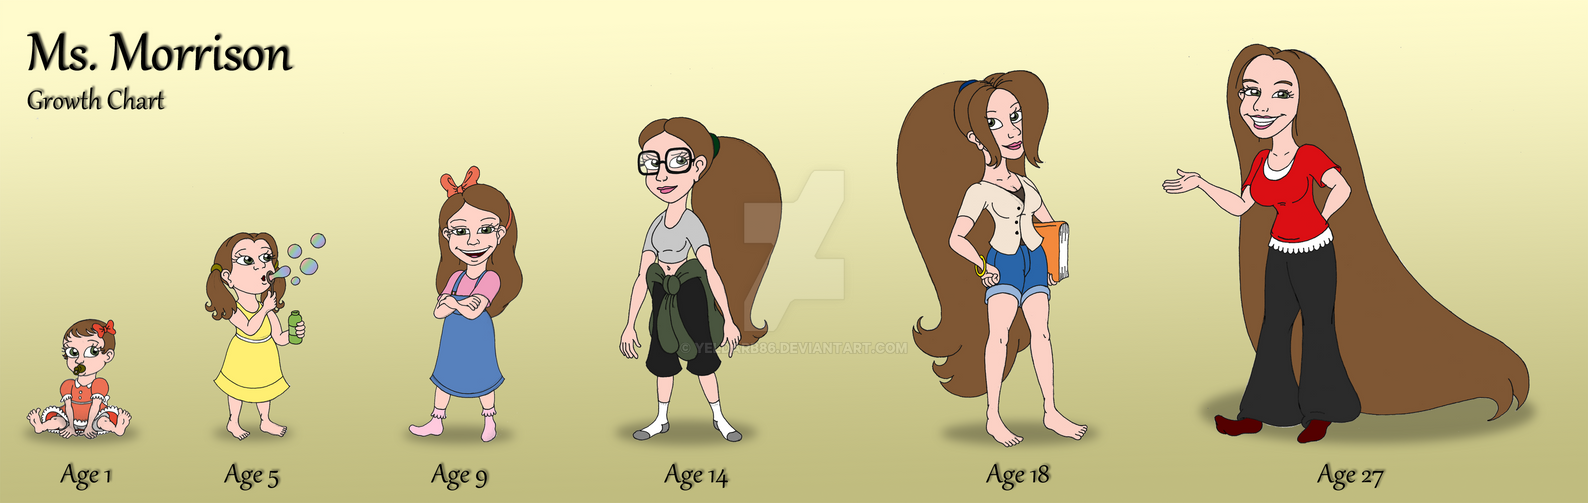 Ms morrison growth chart by yeldarb86 on deviantart ms morrison growth chart by yeldarb86 nvjuhfo Images